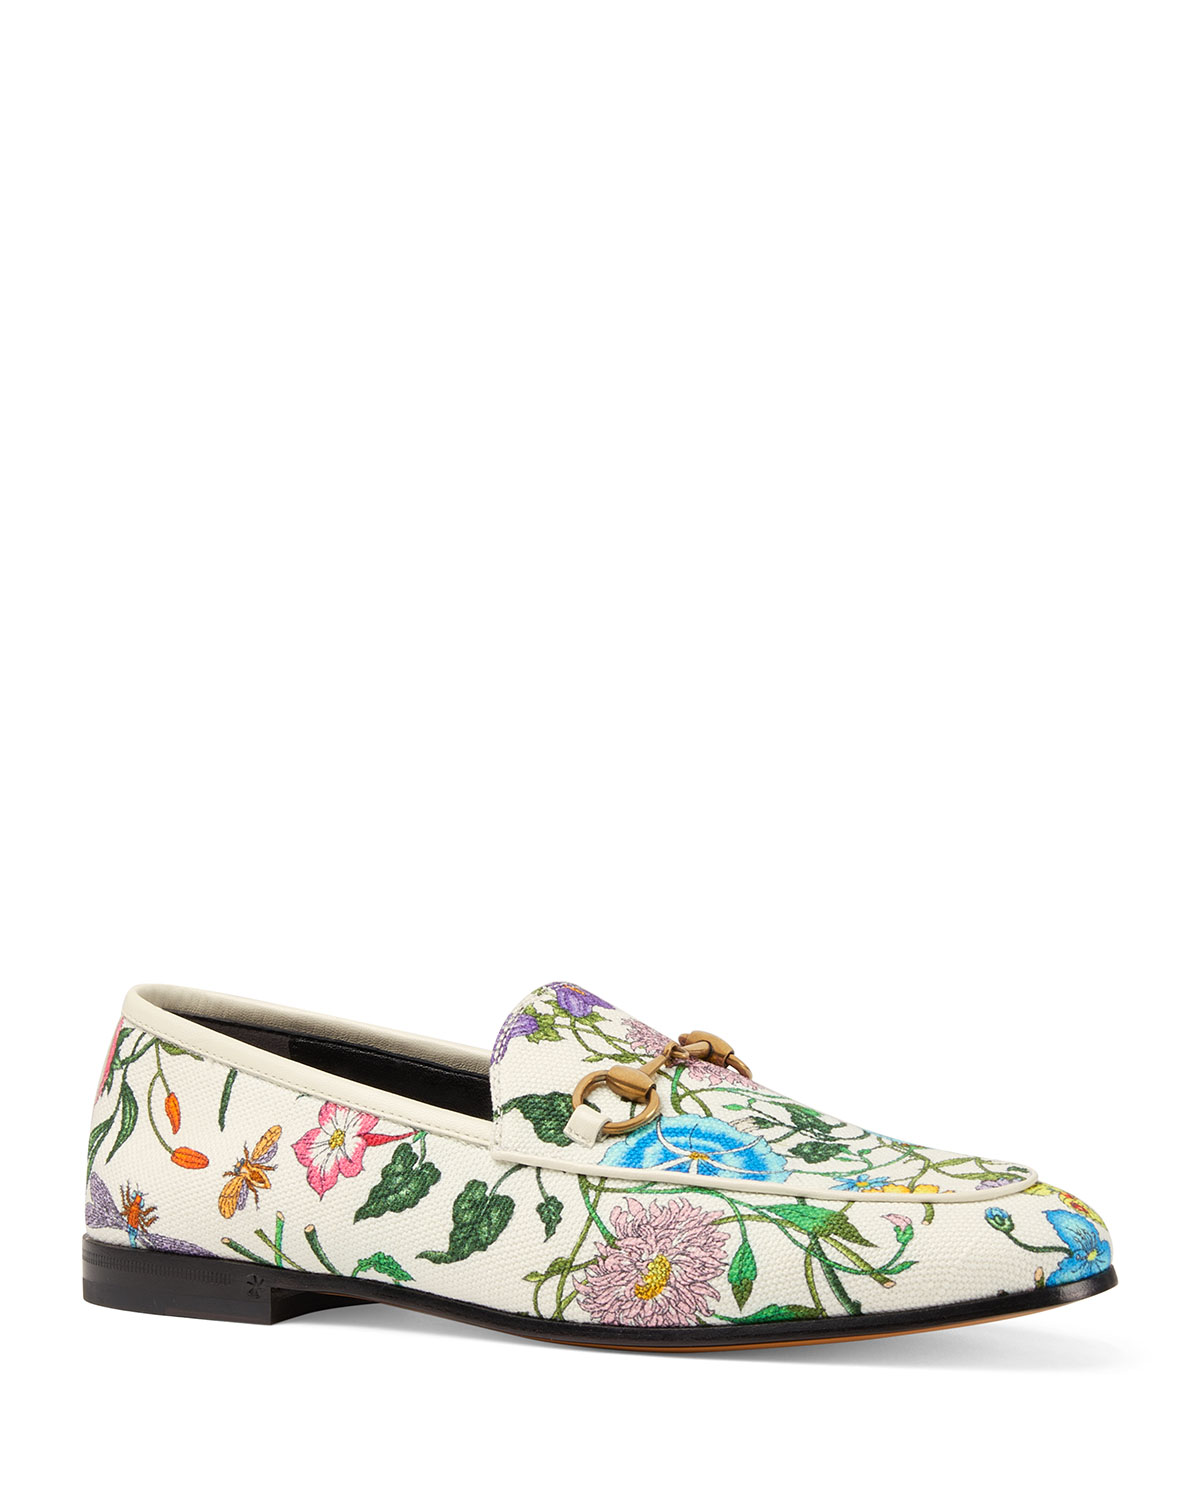 Gucci Floral Canvas Flat Loafers  bbf790766